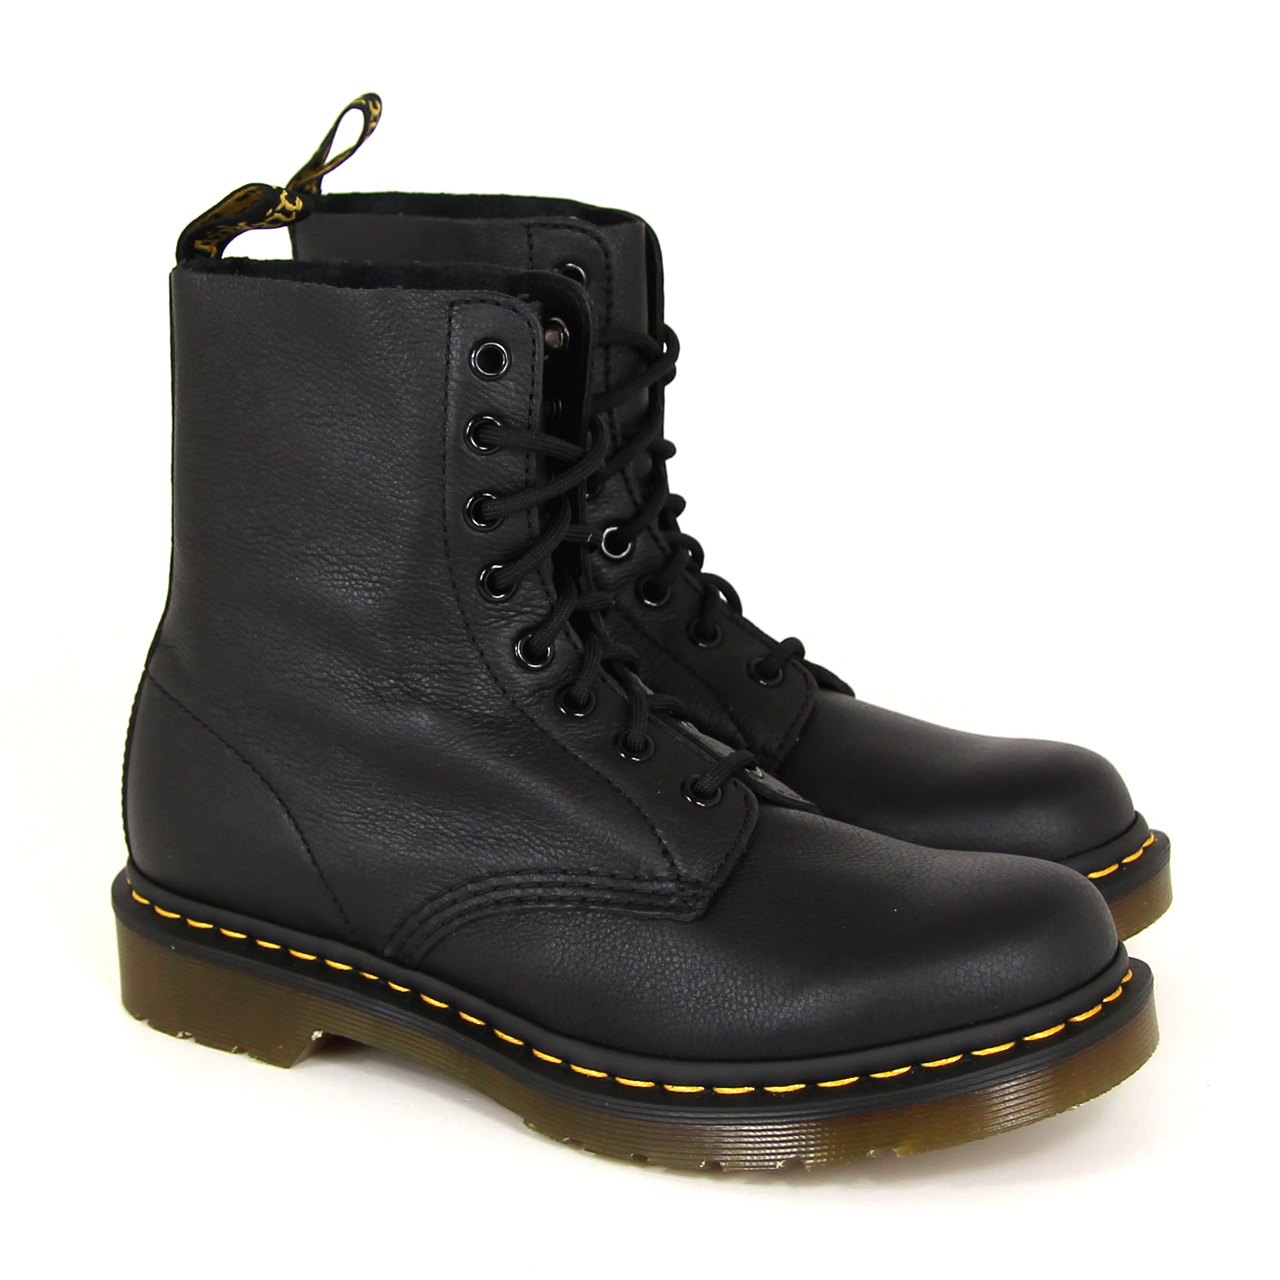 Dr. Martens - PASCAL - Black Virginia